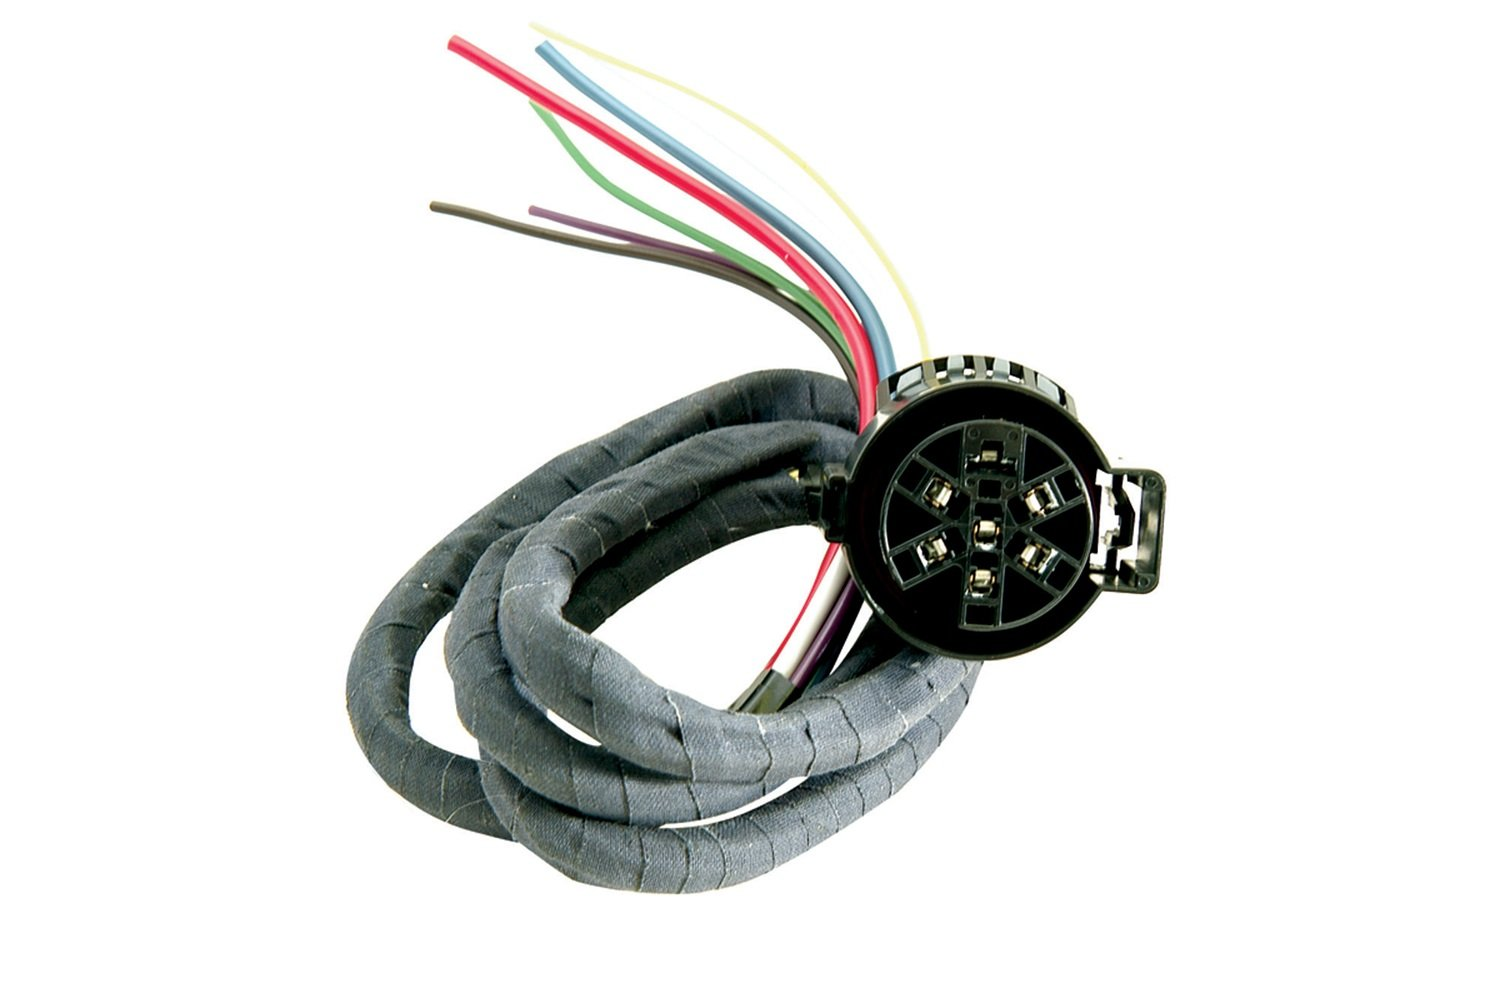 619JgDjQ1WL._SL1500_ amazon com hopkins 40985 universal multi tow harness connector hoppy wiring harness at crackthecode.co